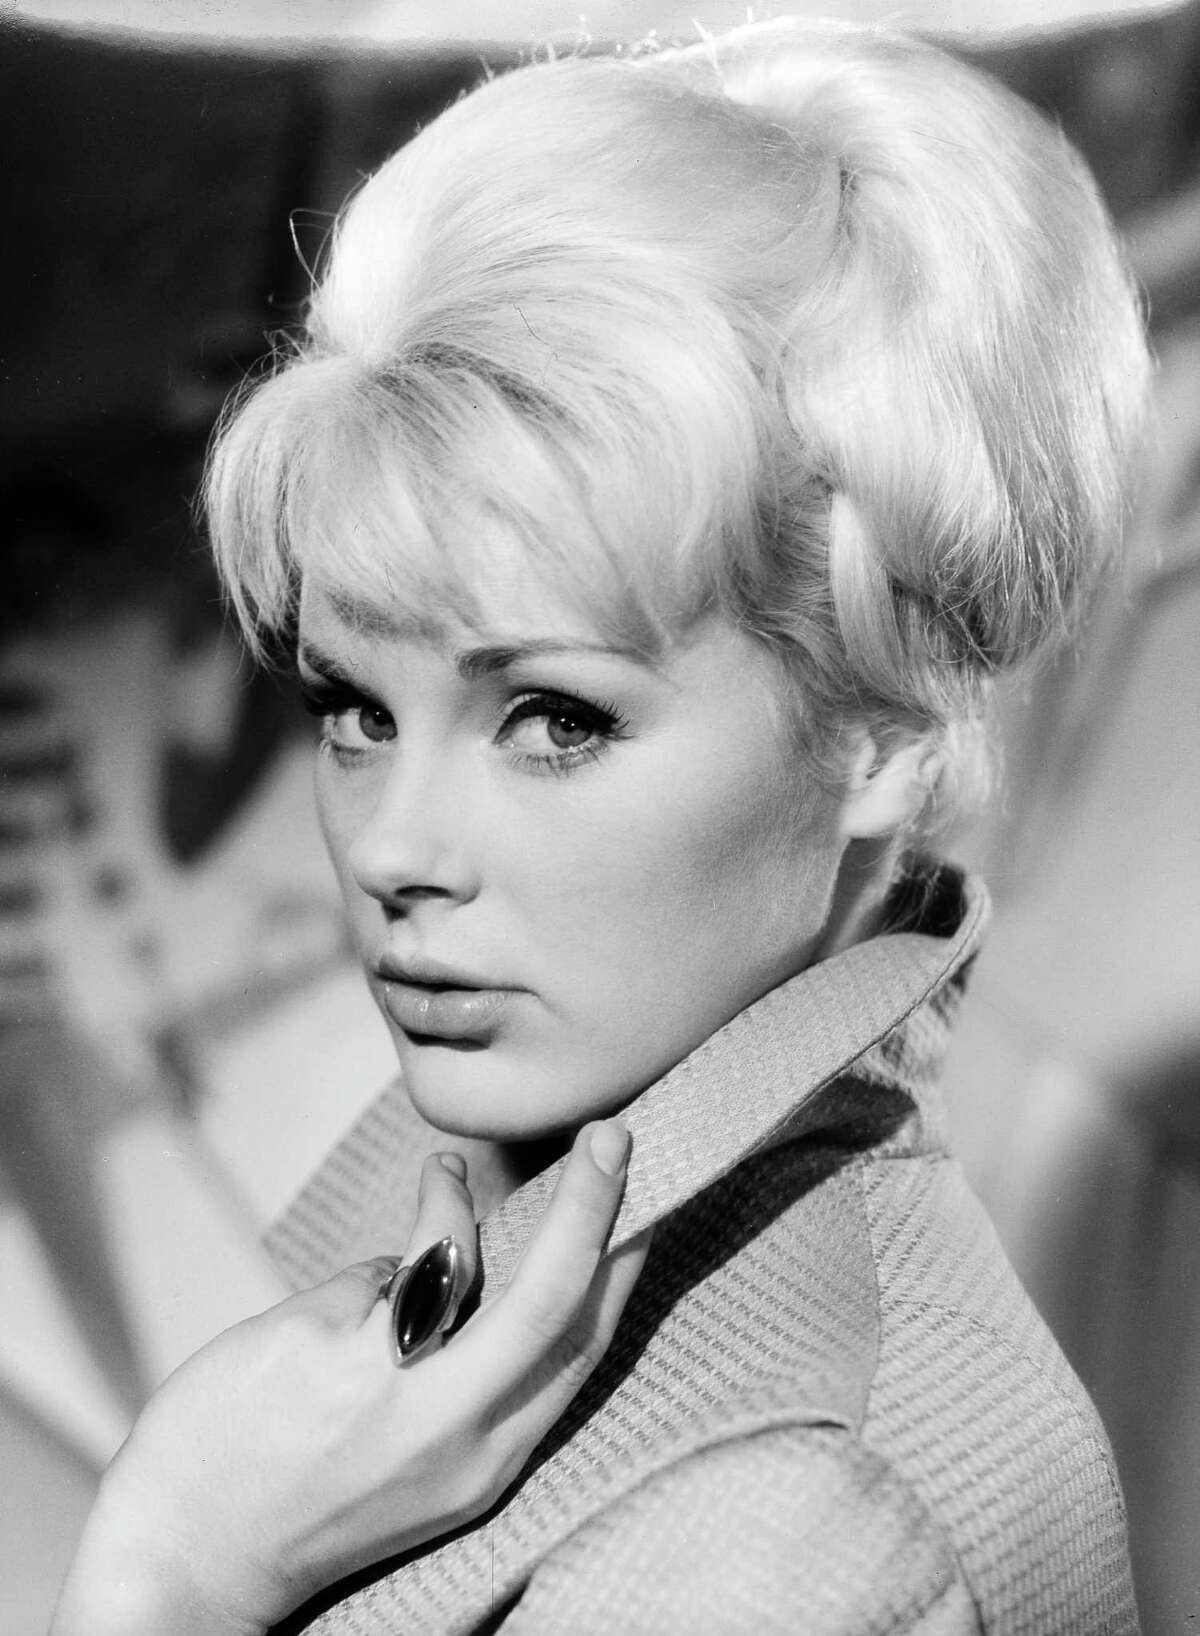 Return with us now to the 1960s ... the relatively calm early '60s, when actresses were often considered part of the set decoration. You may not have heard of German-born Elke Sommer, but she was very much a product of that time.